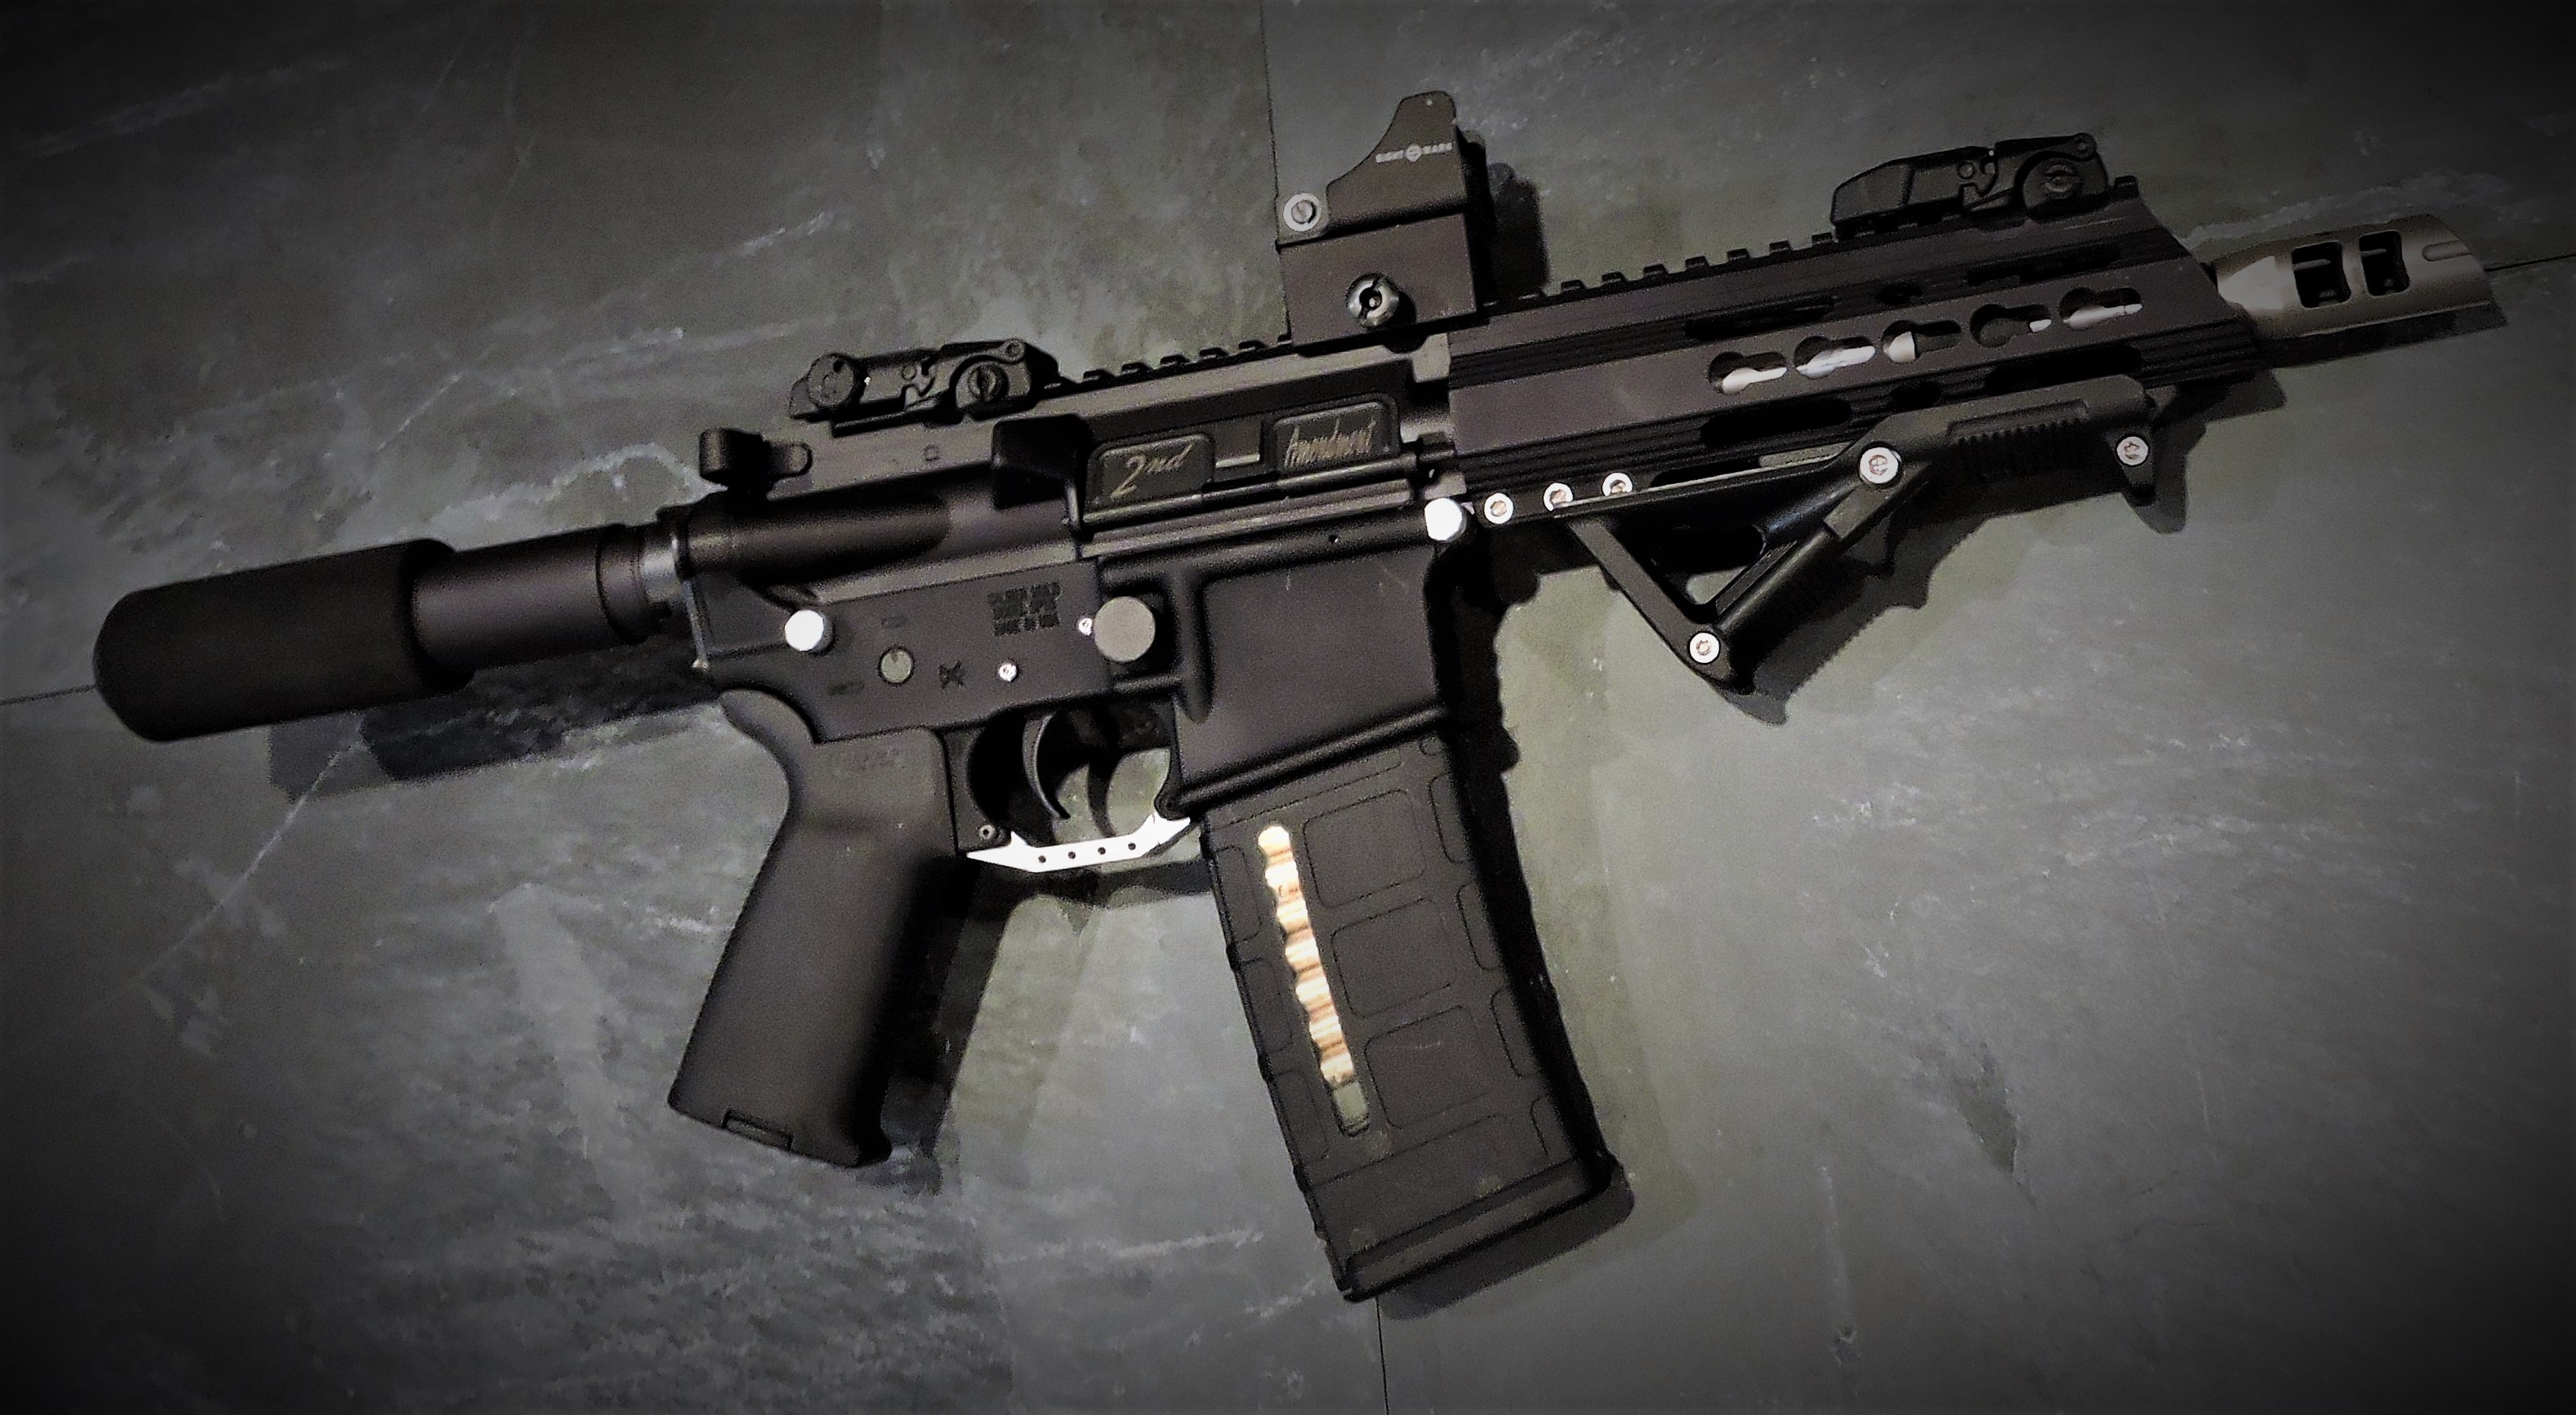 BLACK AND STAINLESS AR-15, AR-10 (LR-308) PARTS